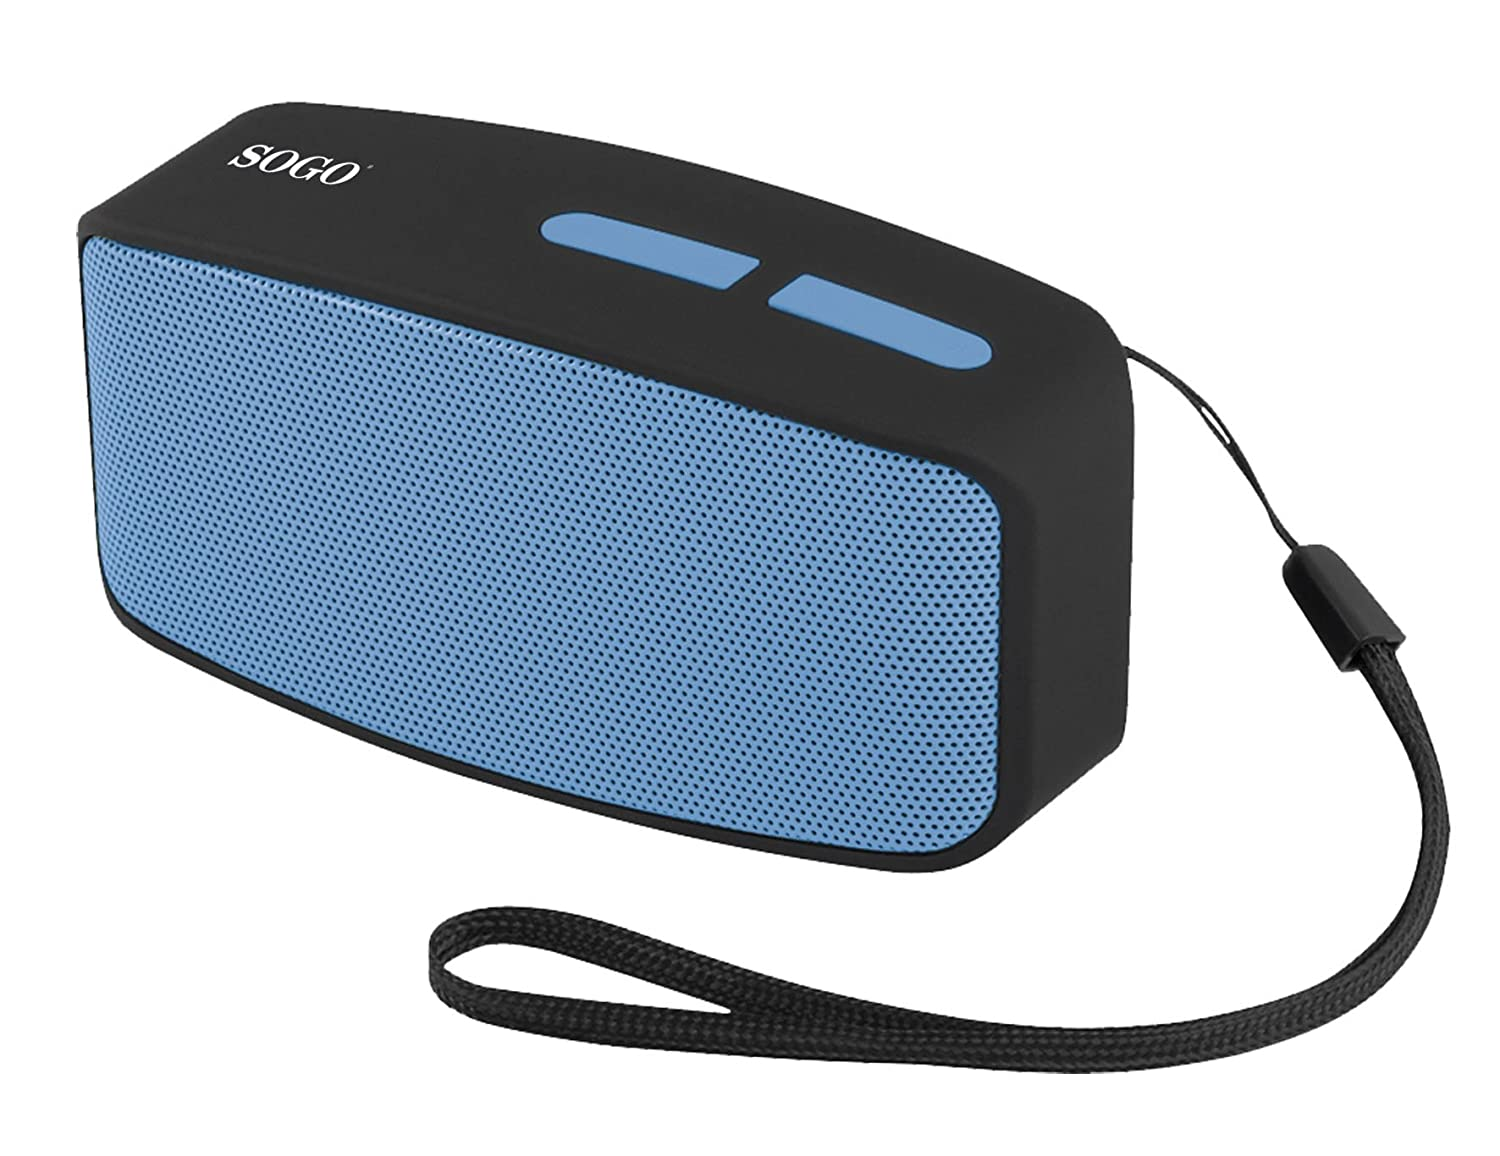 Sogo SS-8215-B - Altavoz portátil con Bluetooth, Radio FM, AUX IN, USB, Micro SD, Color Azul